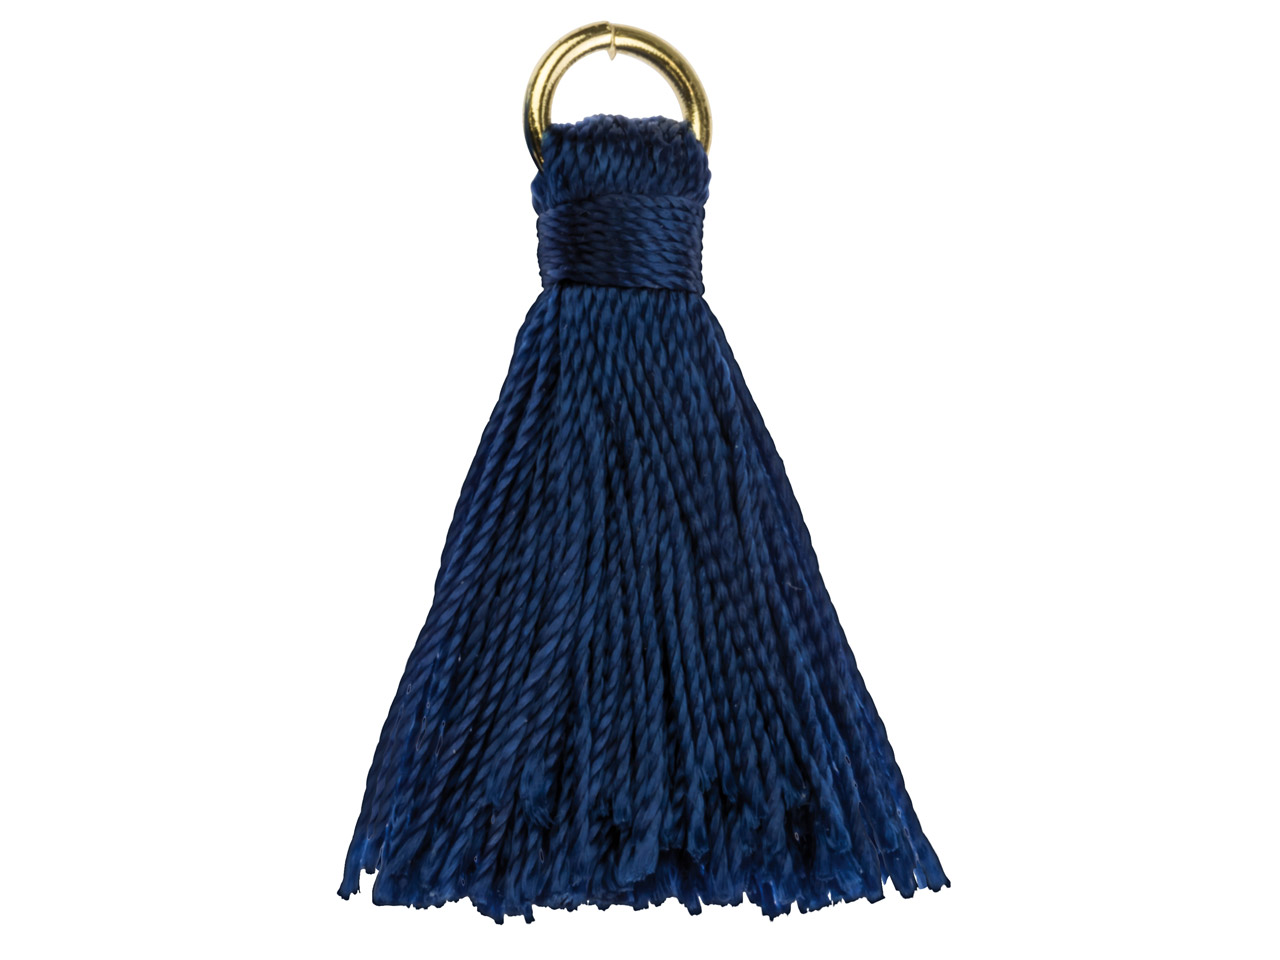 Blue Nylon Tassel With Gold Plated Jump Ring Pack of 5